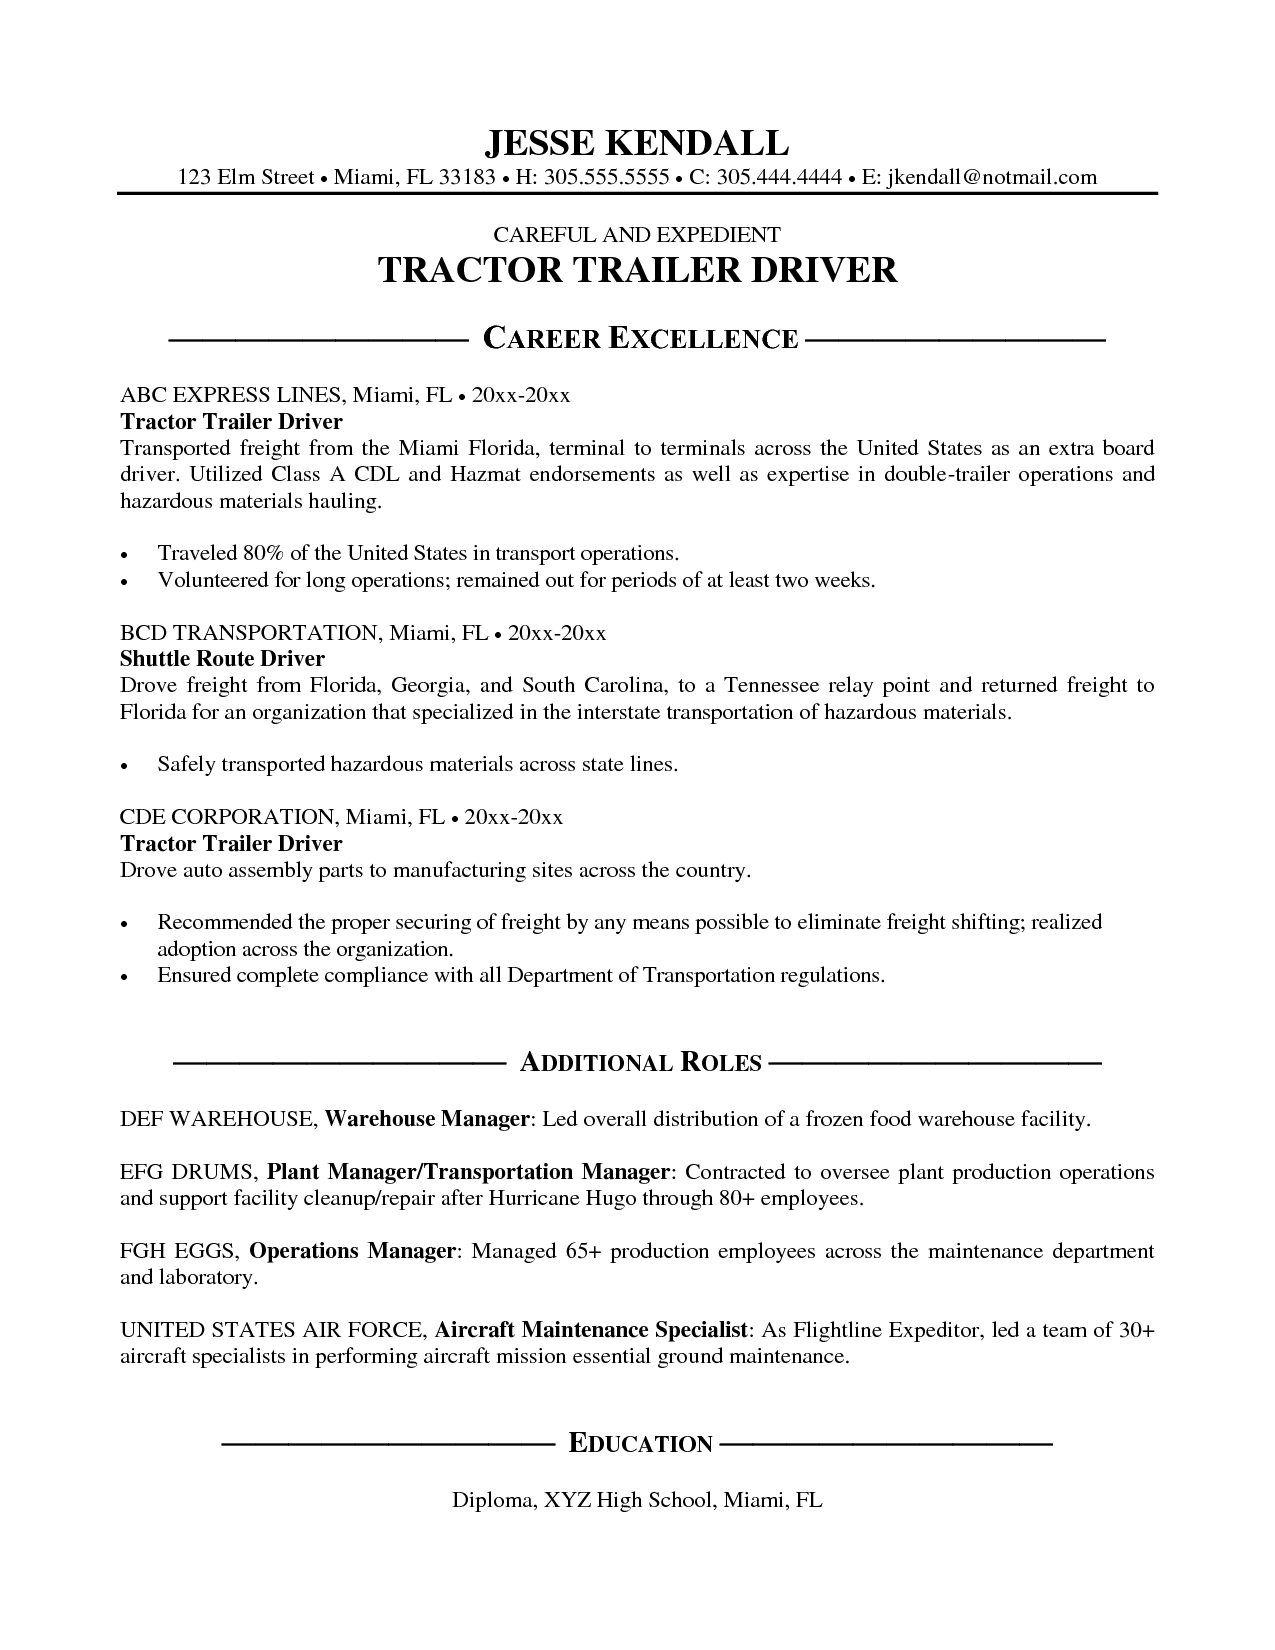 Resume Samples For Truck Drivers Resume Examples Delivery Driver  Resume Examples  Pinterest .